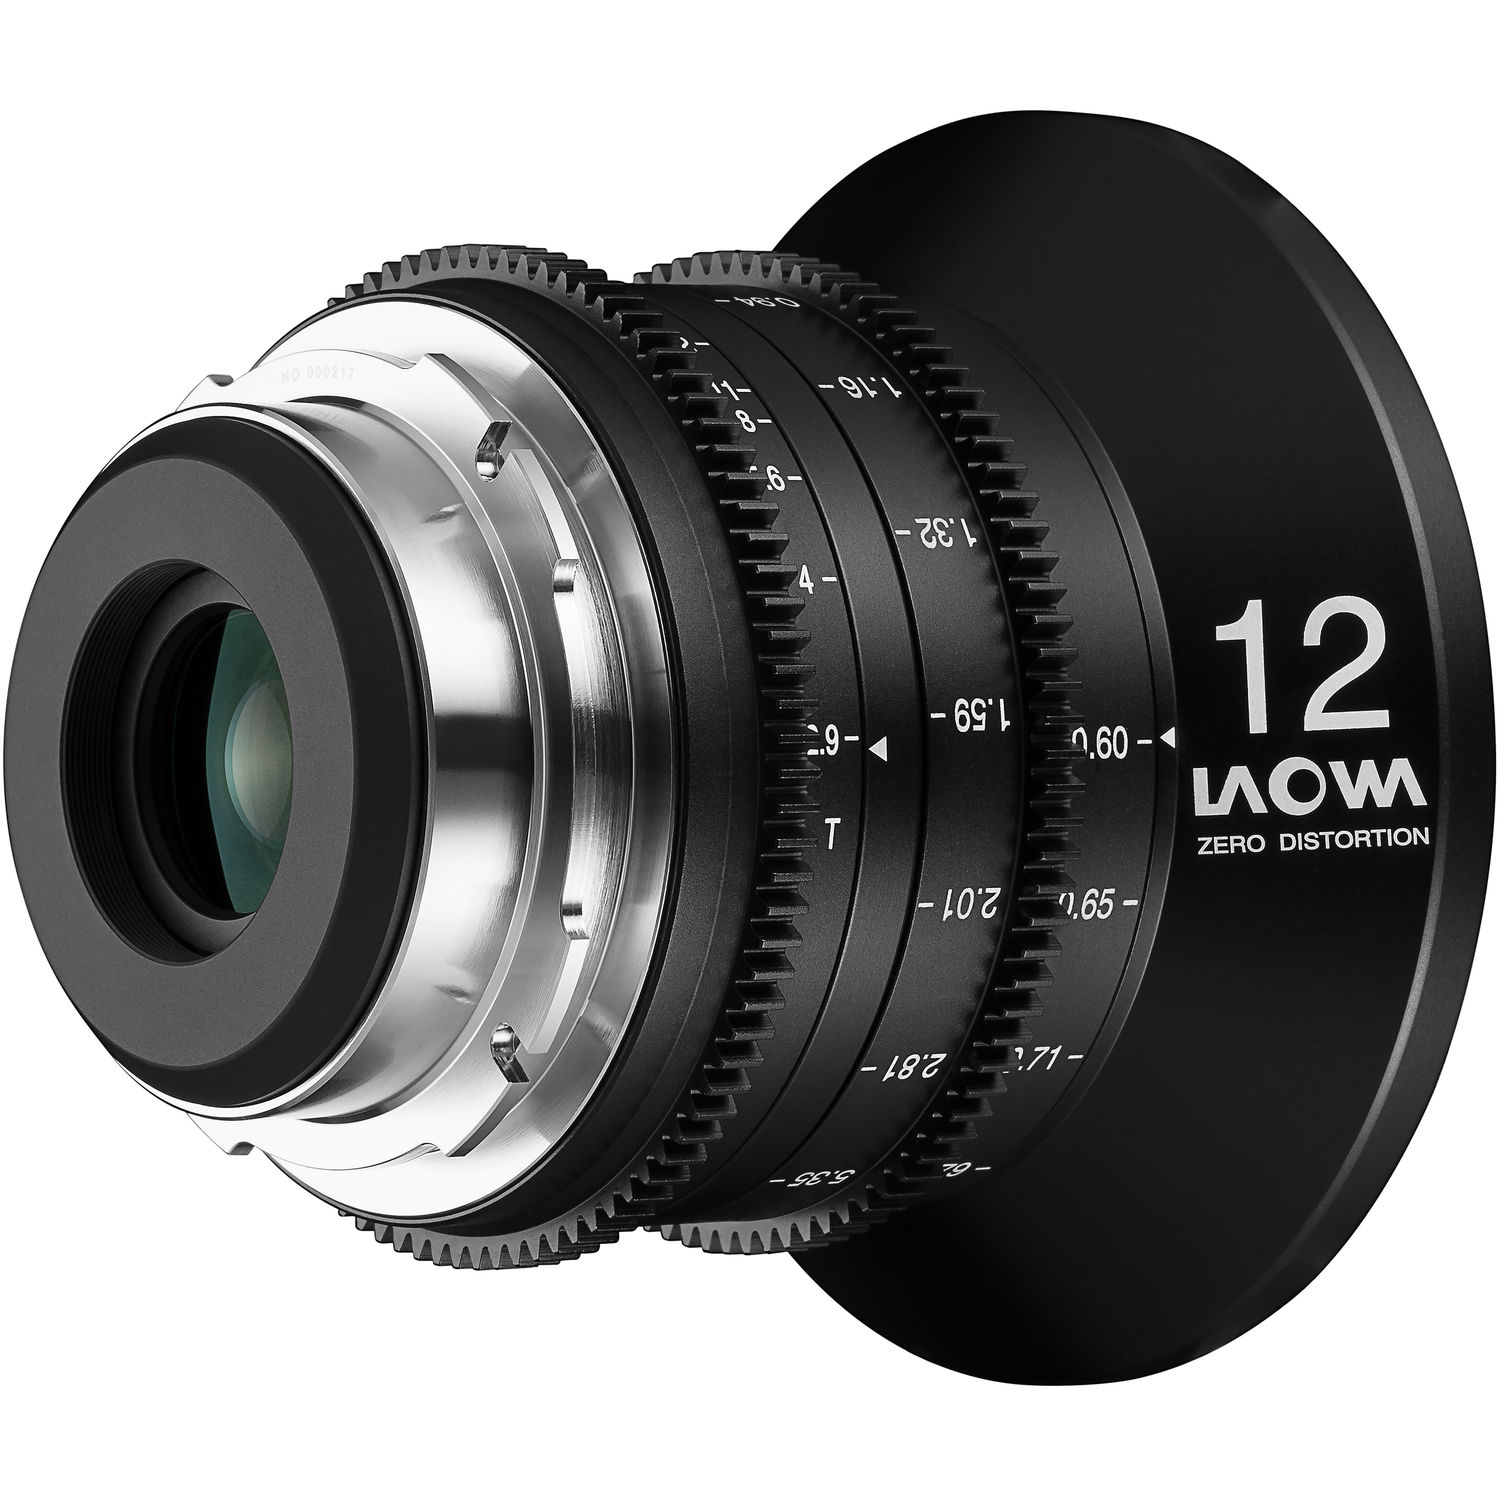 Venus Optics Laowa 12mm T2.9 Zero-D Cine Lens (PL Mount)